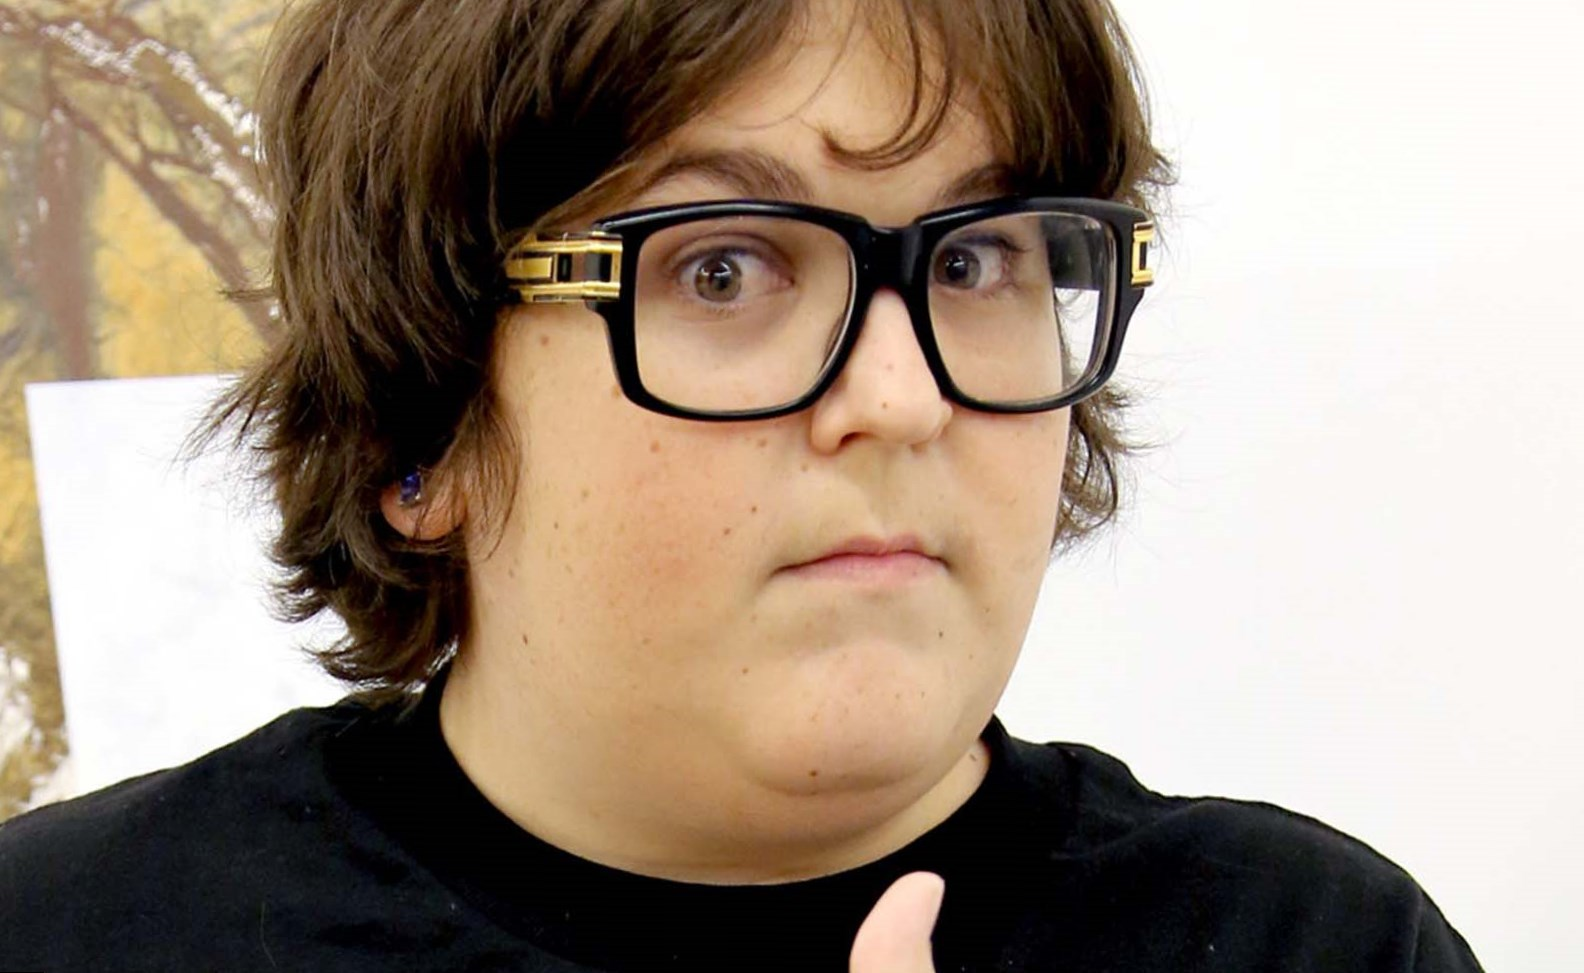 Andy milonakis dating